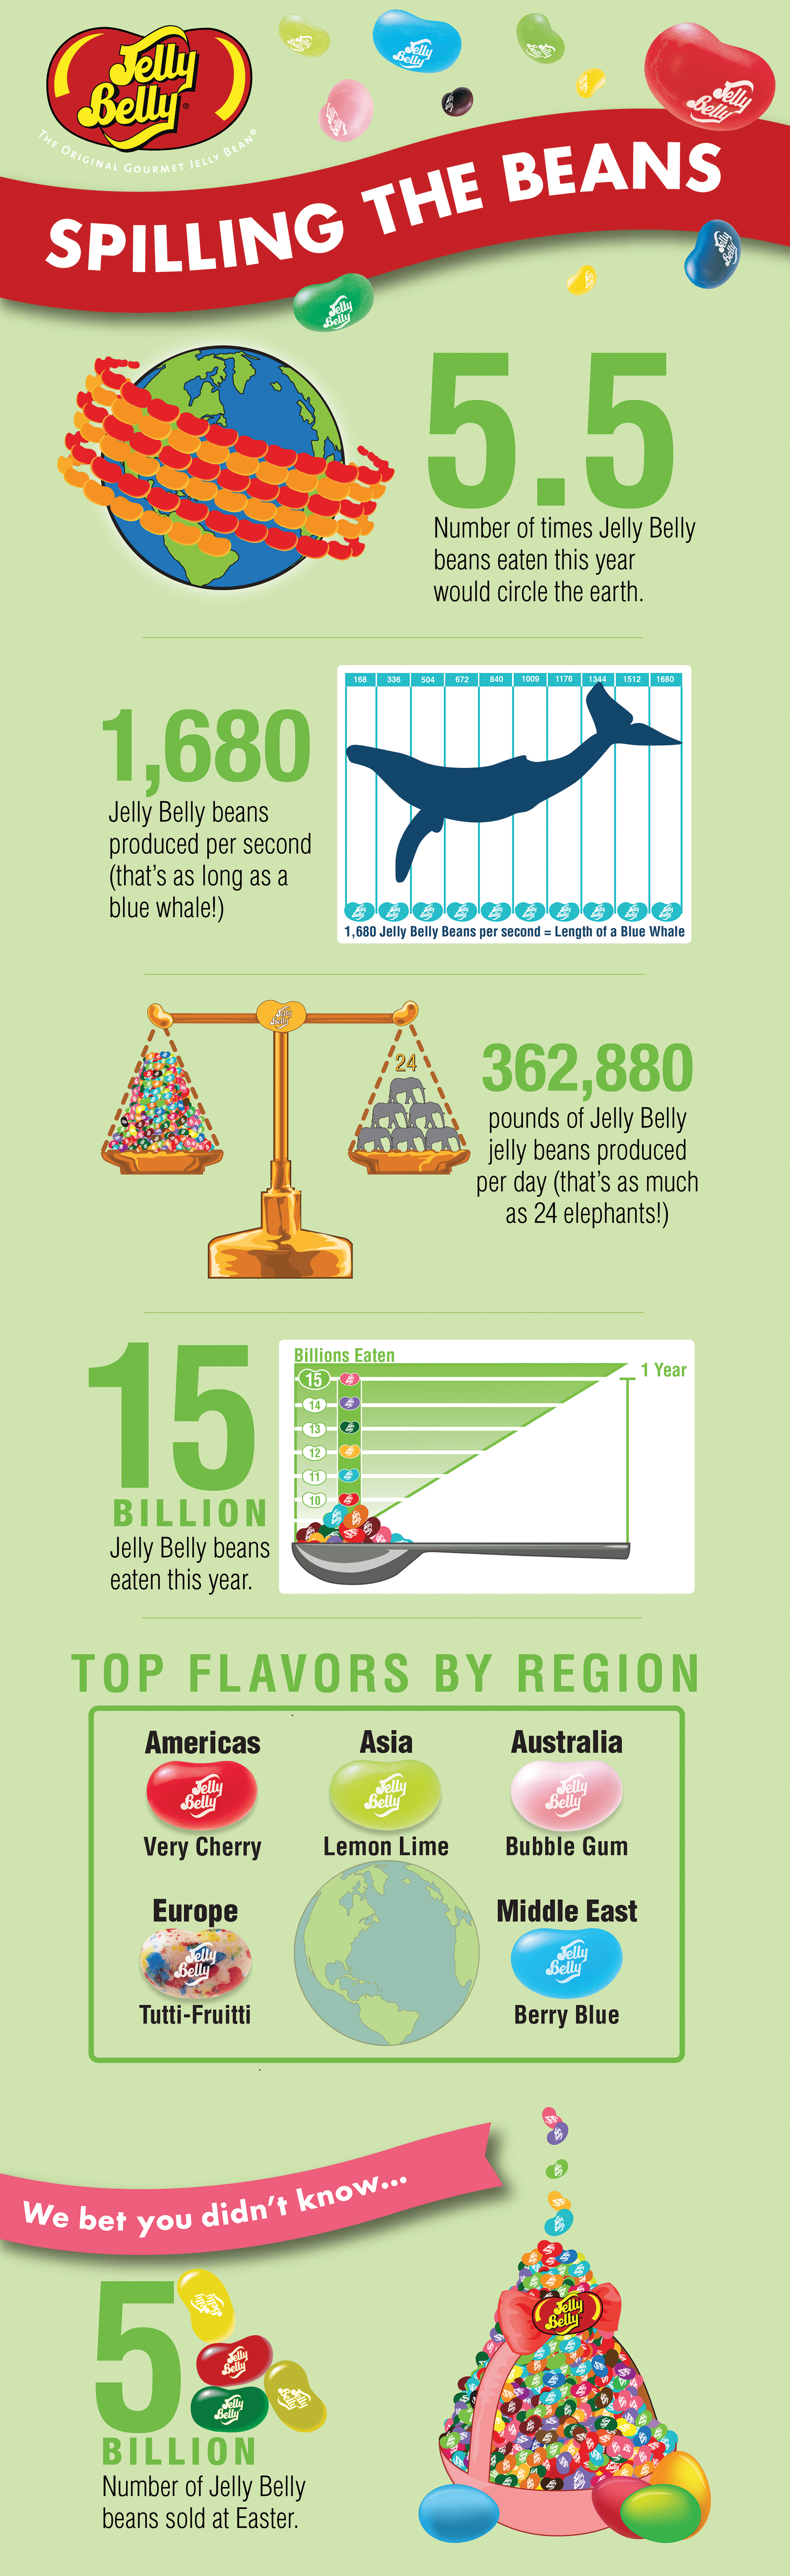 Jelly Belly Spilling the Beans Infographic